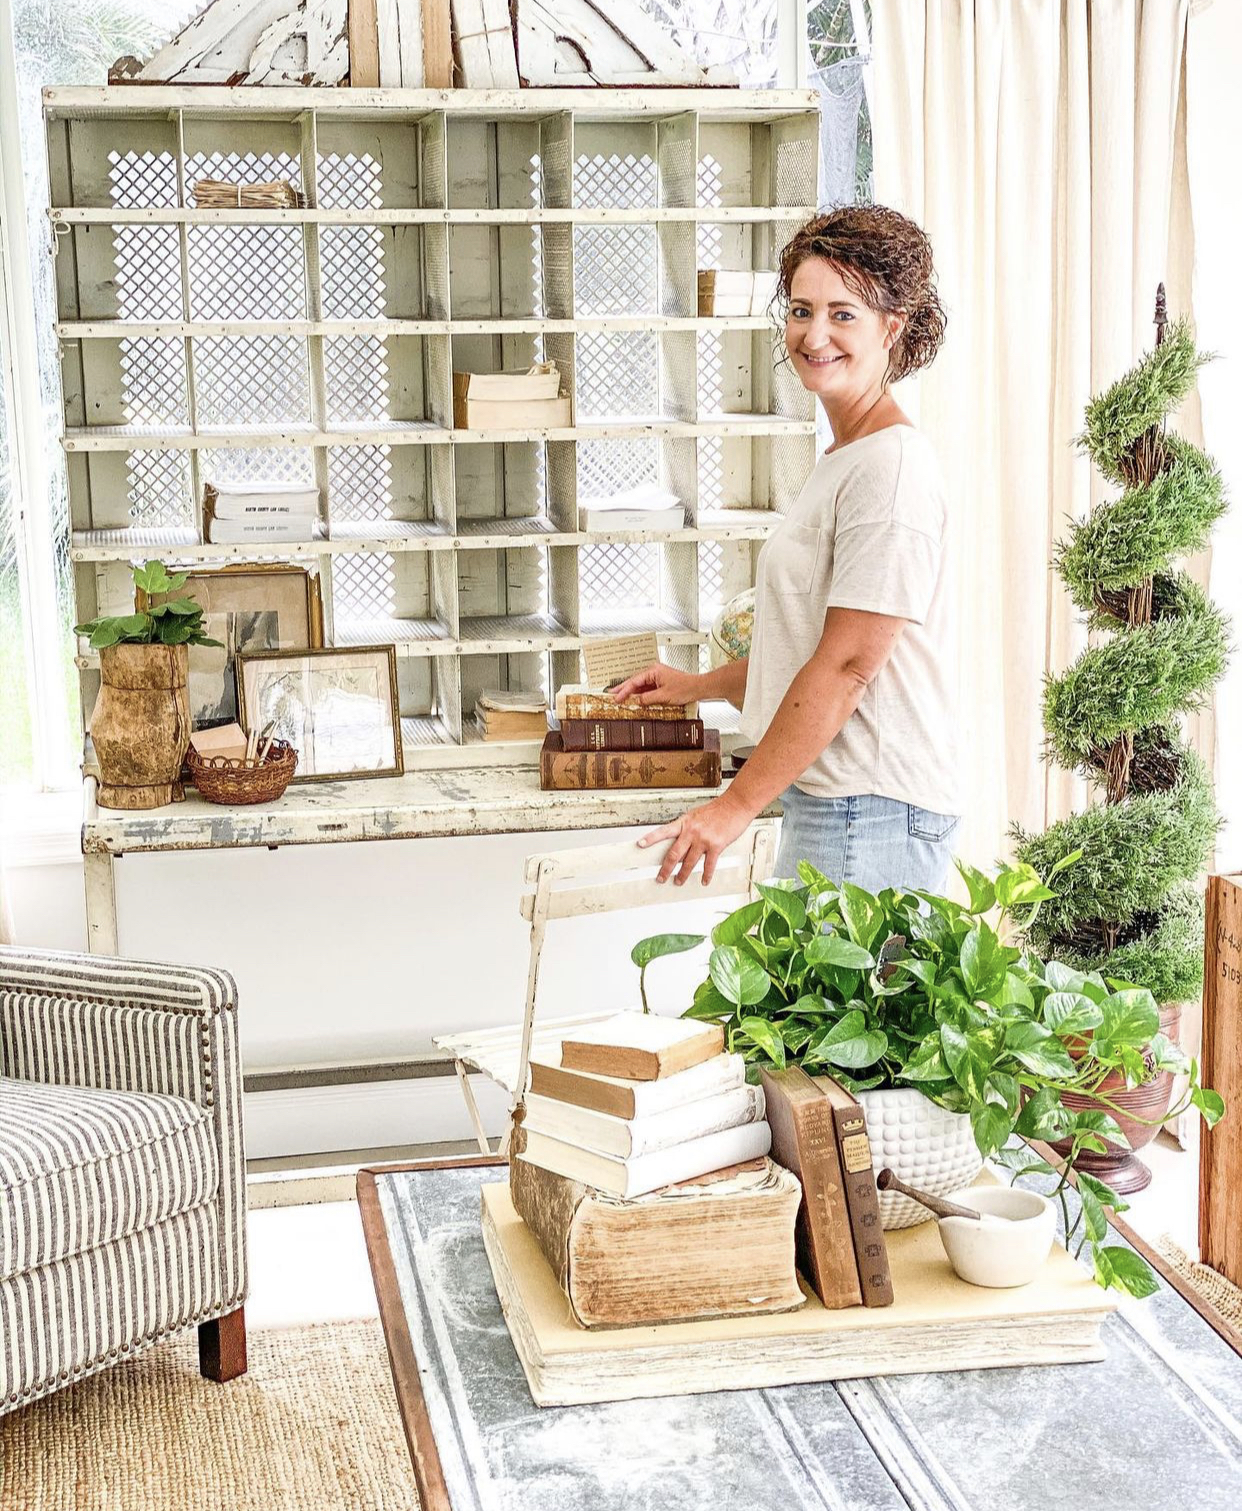 7 Useful Fall Decor Items You Need to Thrift For